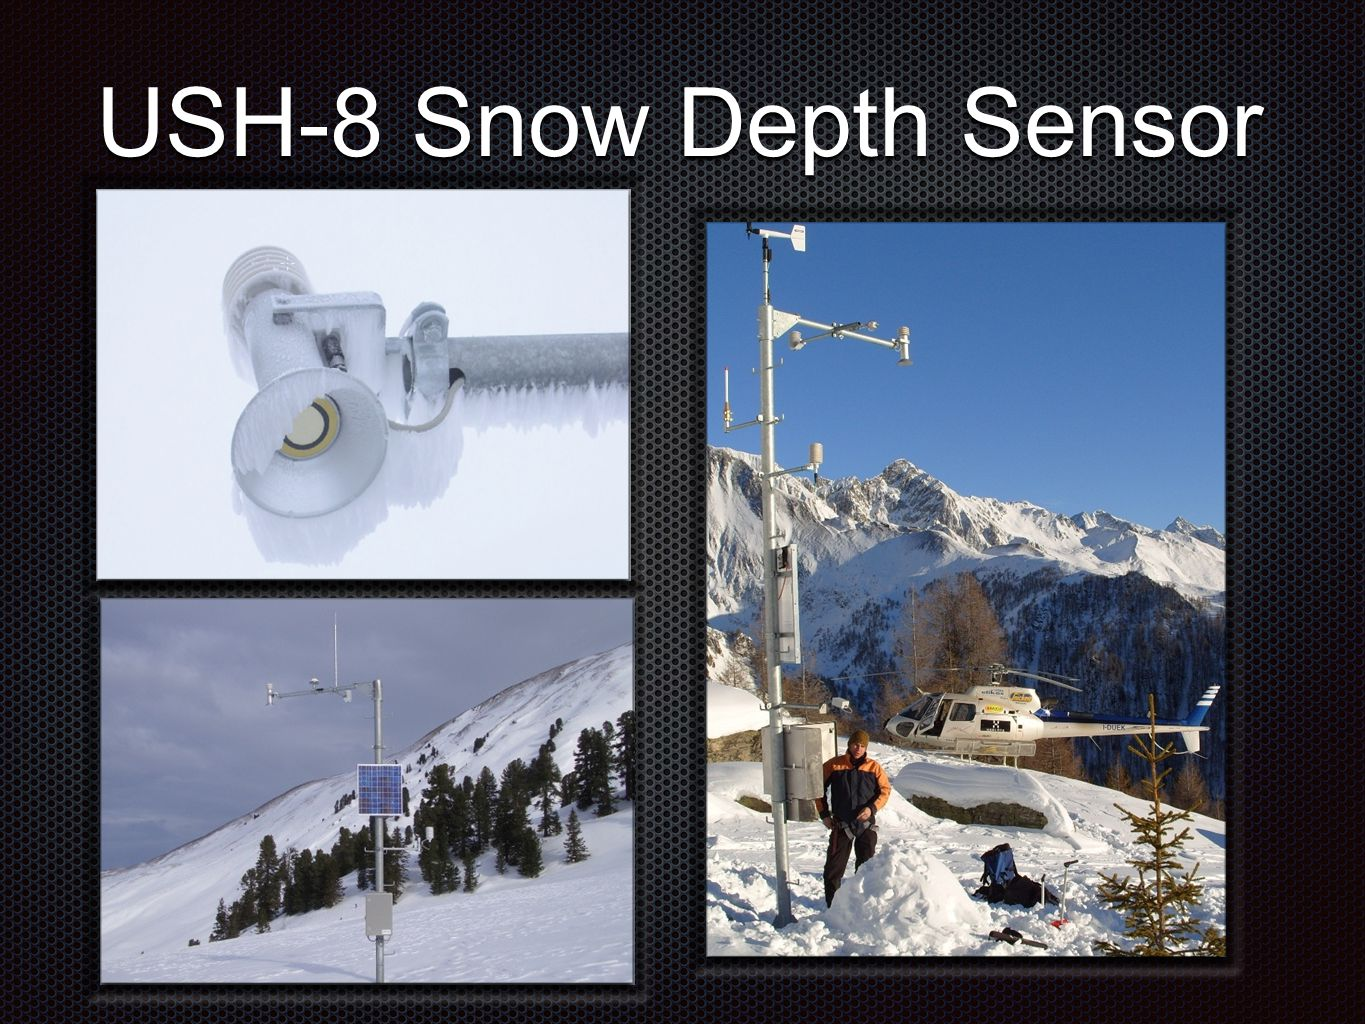 SNOW SCALE SSG SWE (Snow Water Equivalent) Sensor